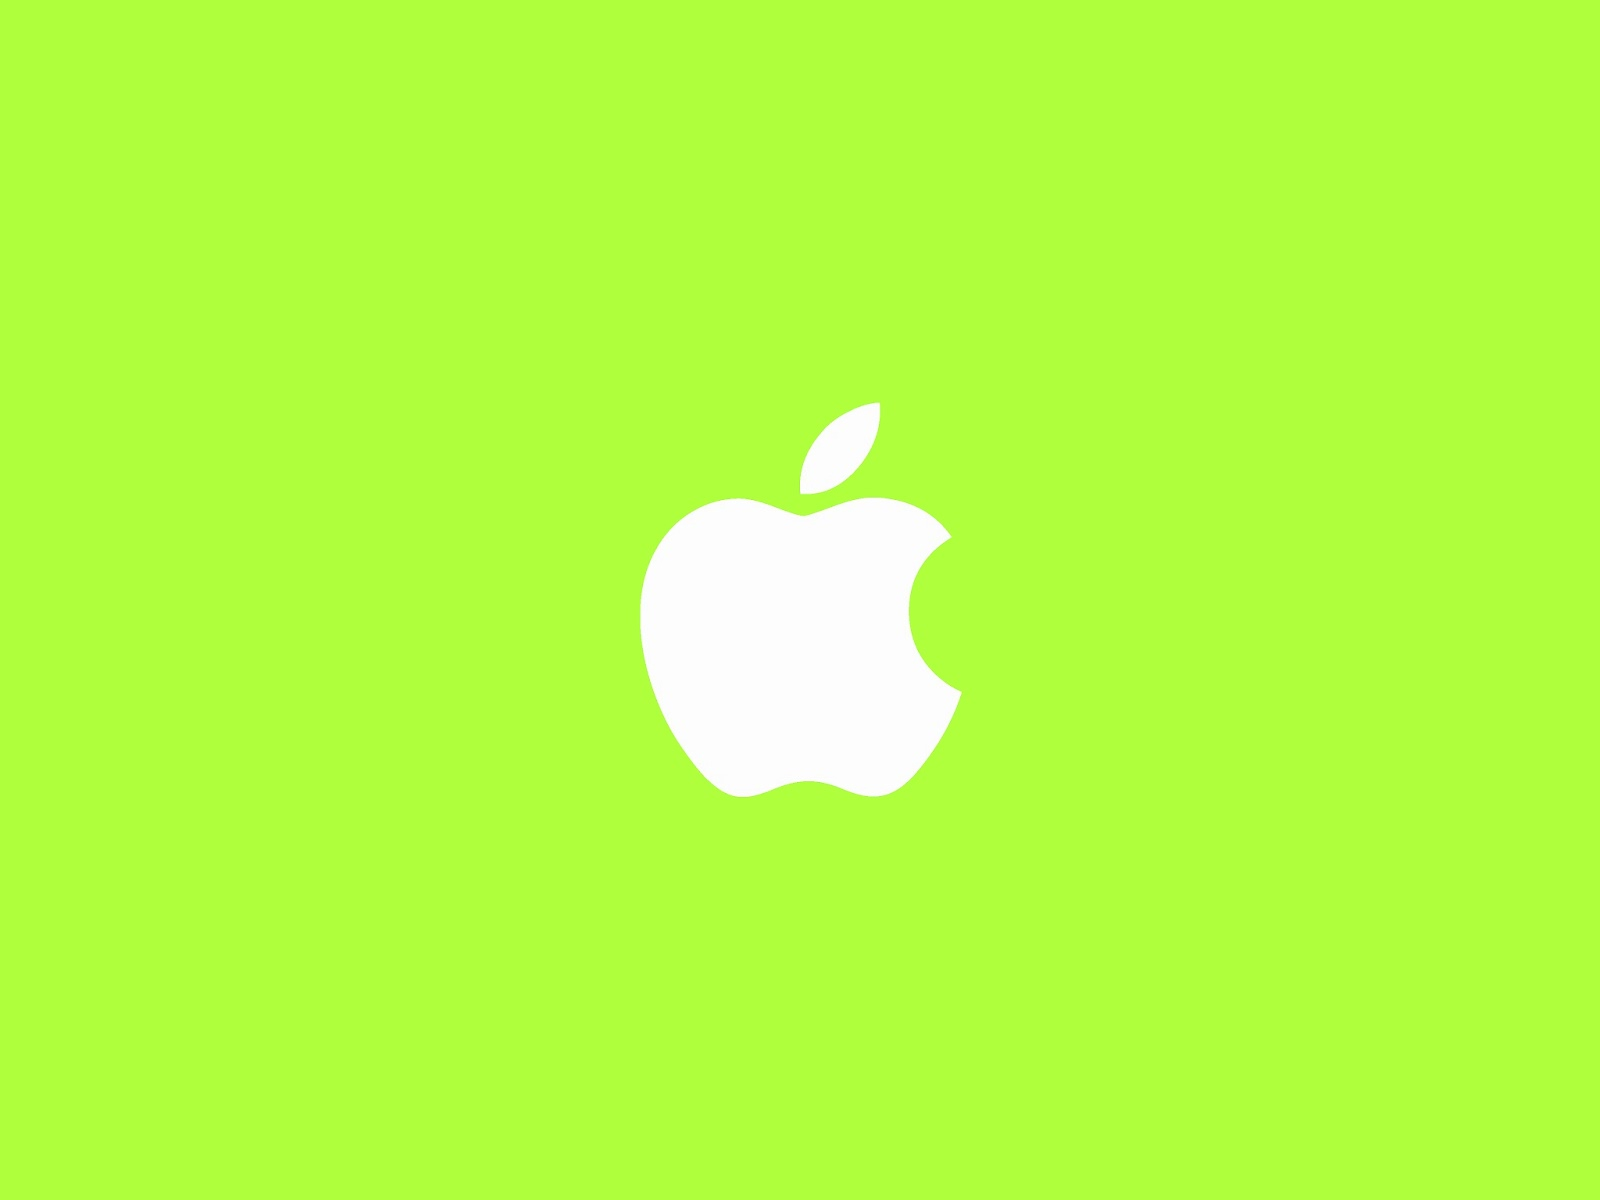 Free Awesome Simple Pure Dark Apple Green X Colors IMac And MacBook Pro Wallpaper HD High Quality 4000x3000 Pixels 29